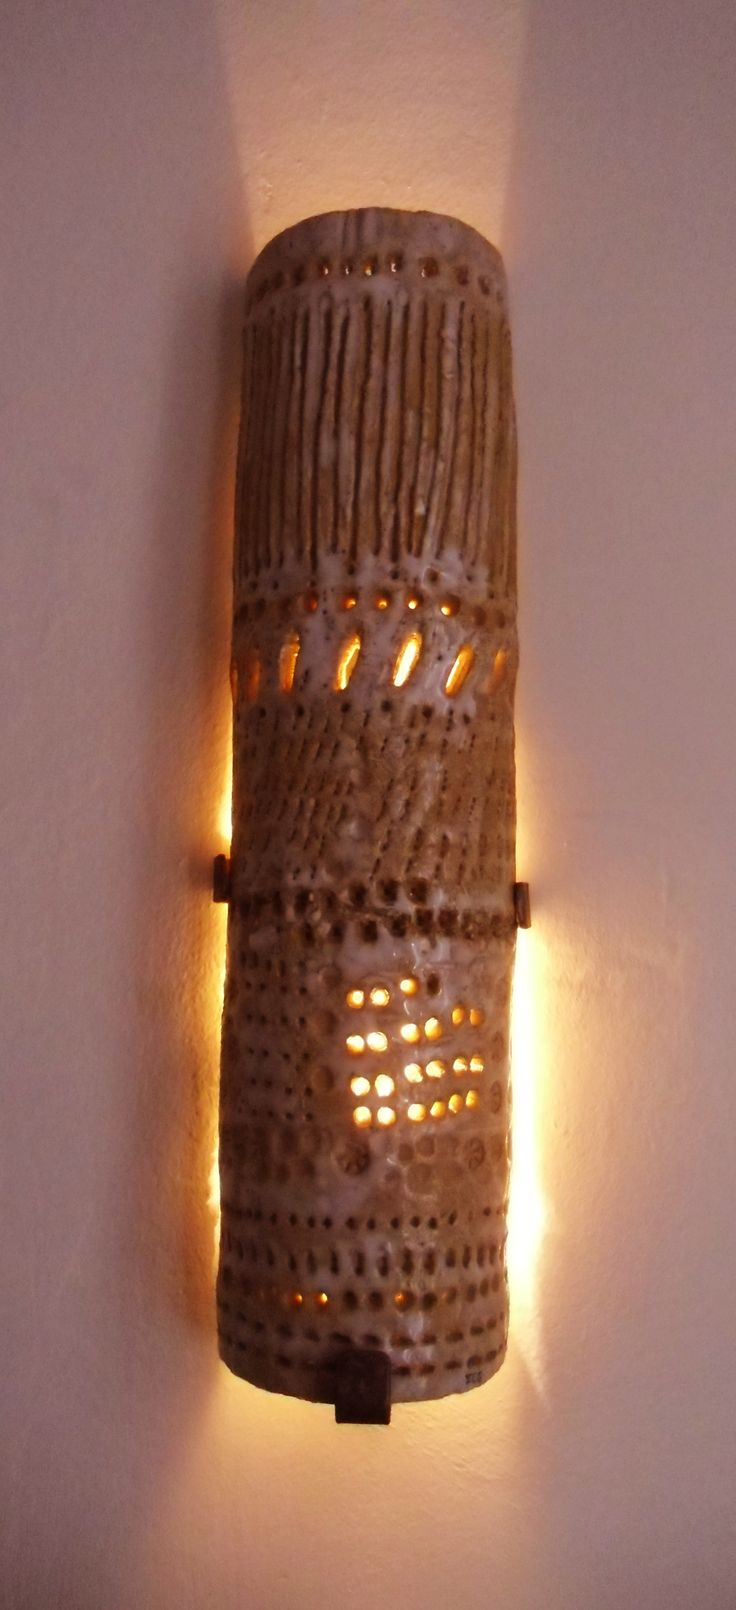 Ceramic wall lamp hold with an iron structure, by Elena Gutierrez Giulianotti.